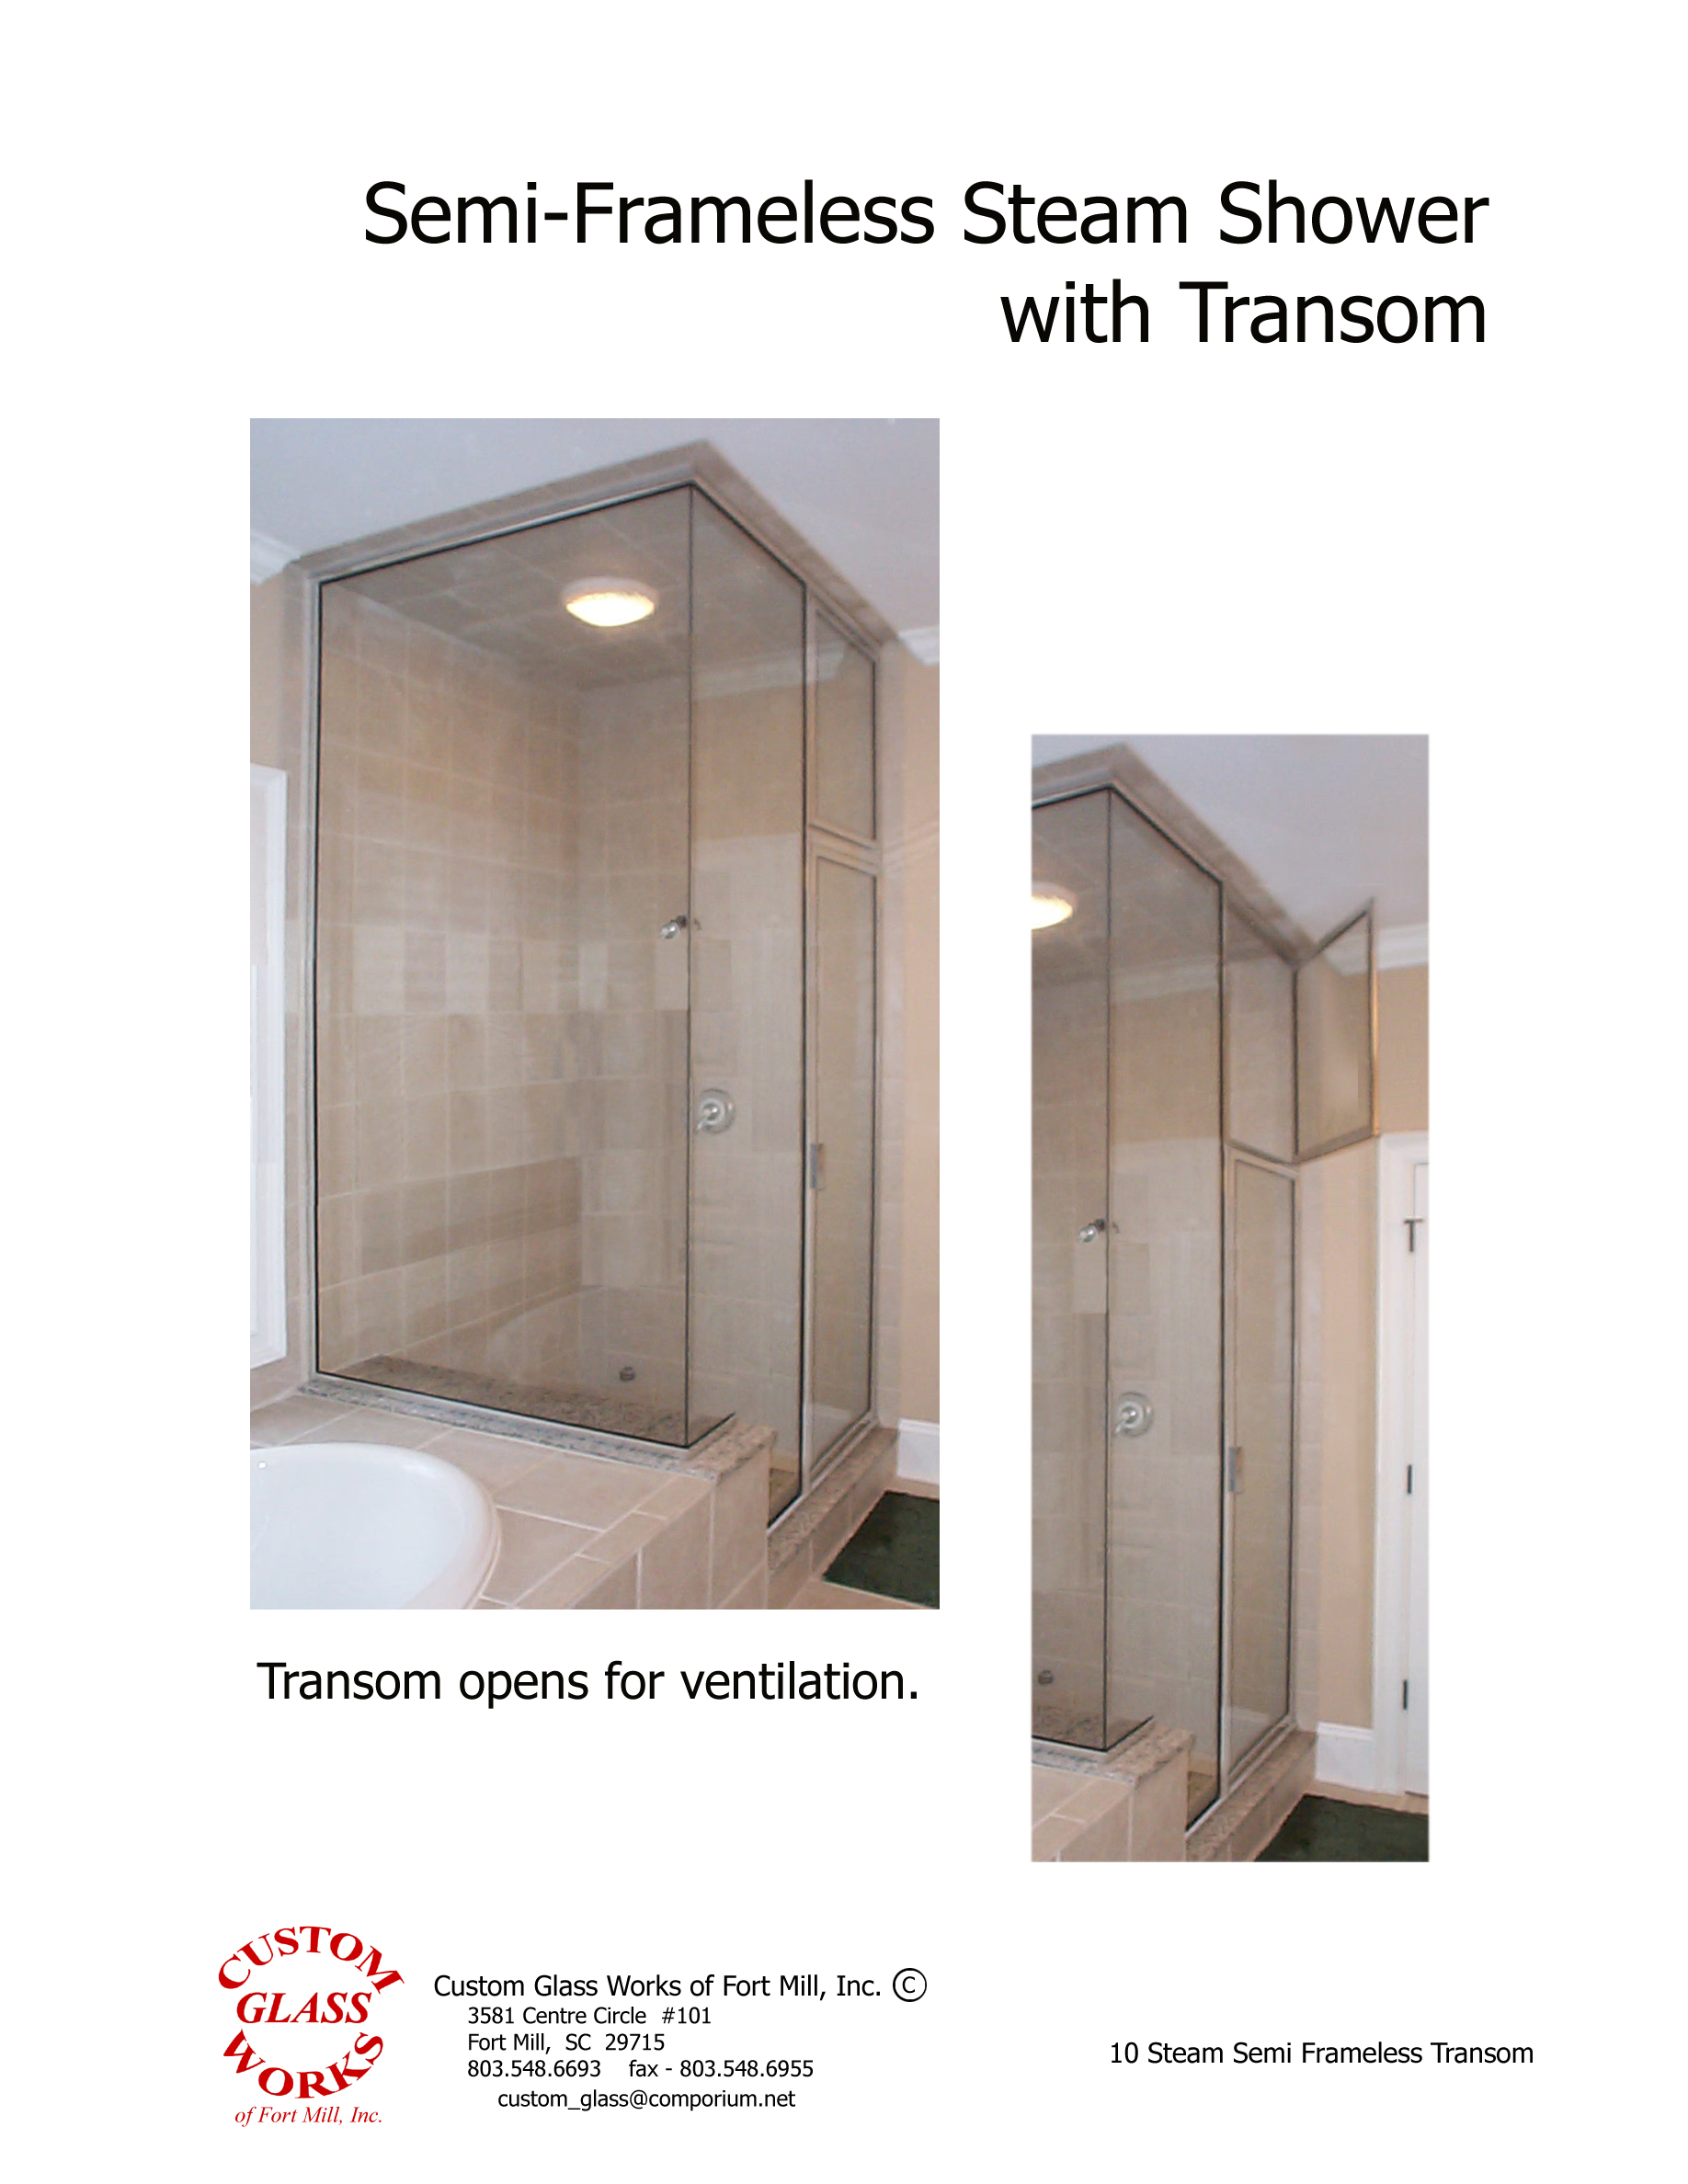 10 Steam Semi Frameless Transom